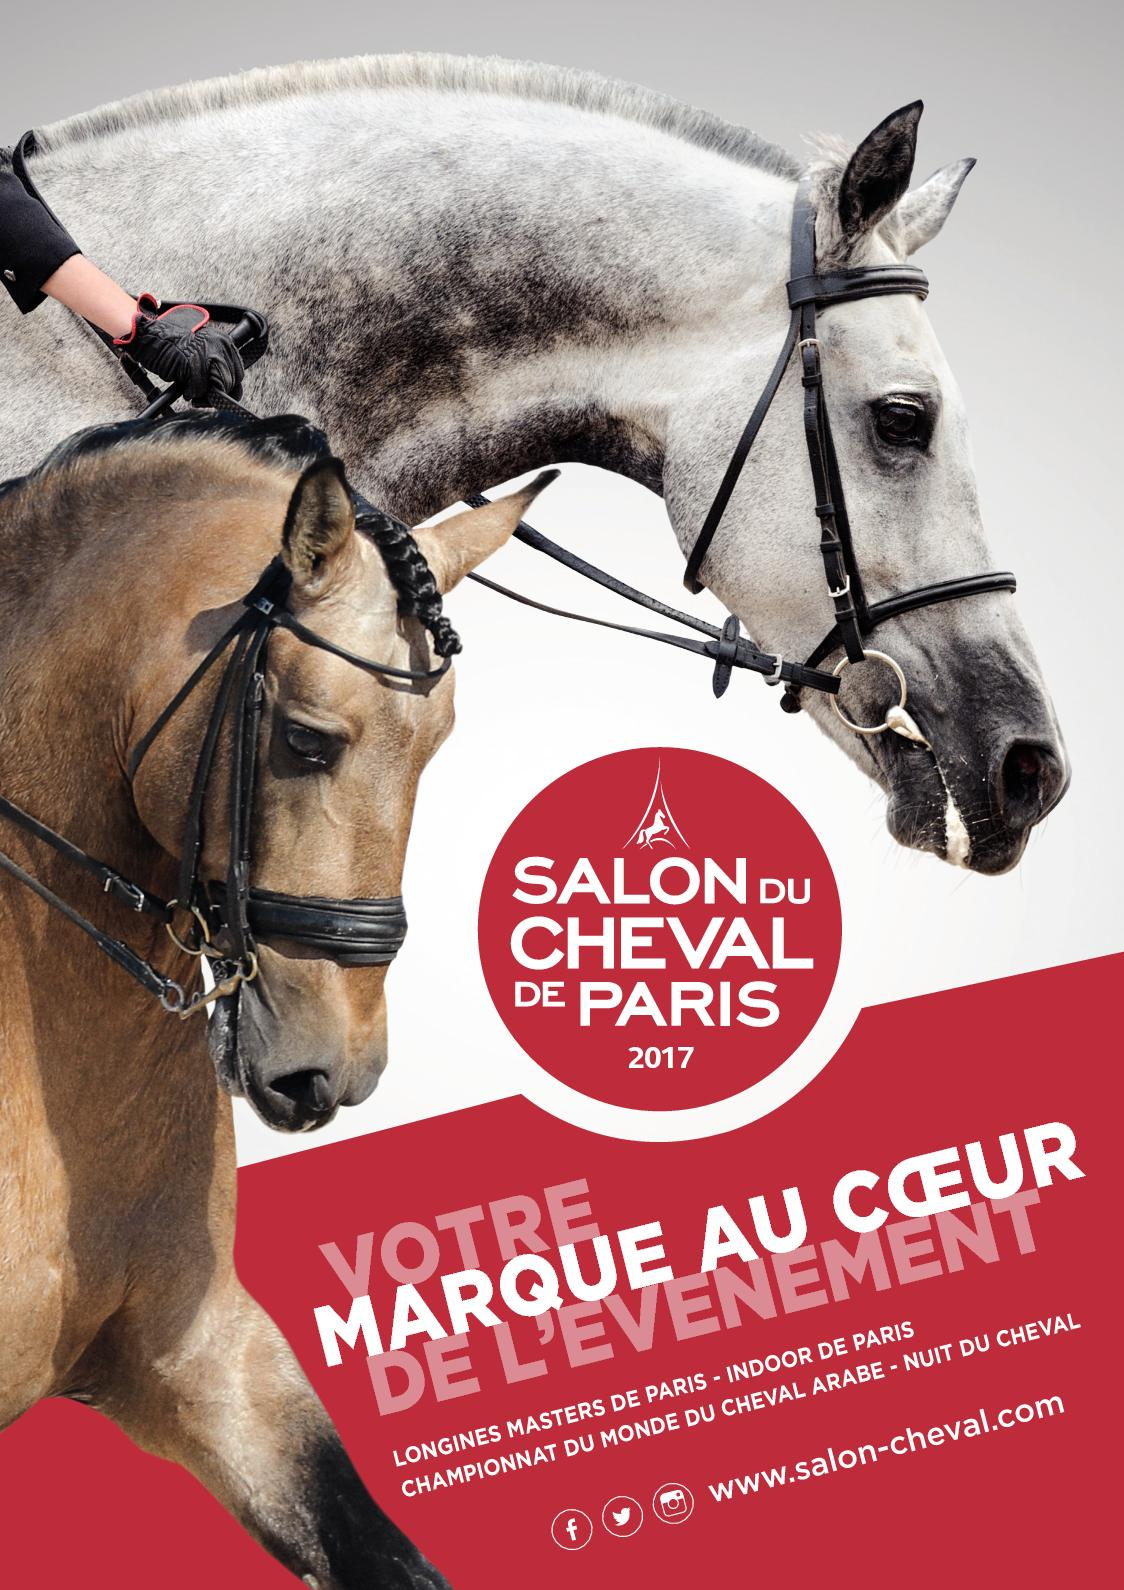 Salon Du Cheval A Paris Calaméo Outils De Communication Salon Du Cheval De Paris 2017